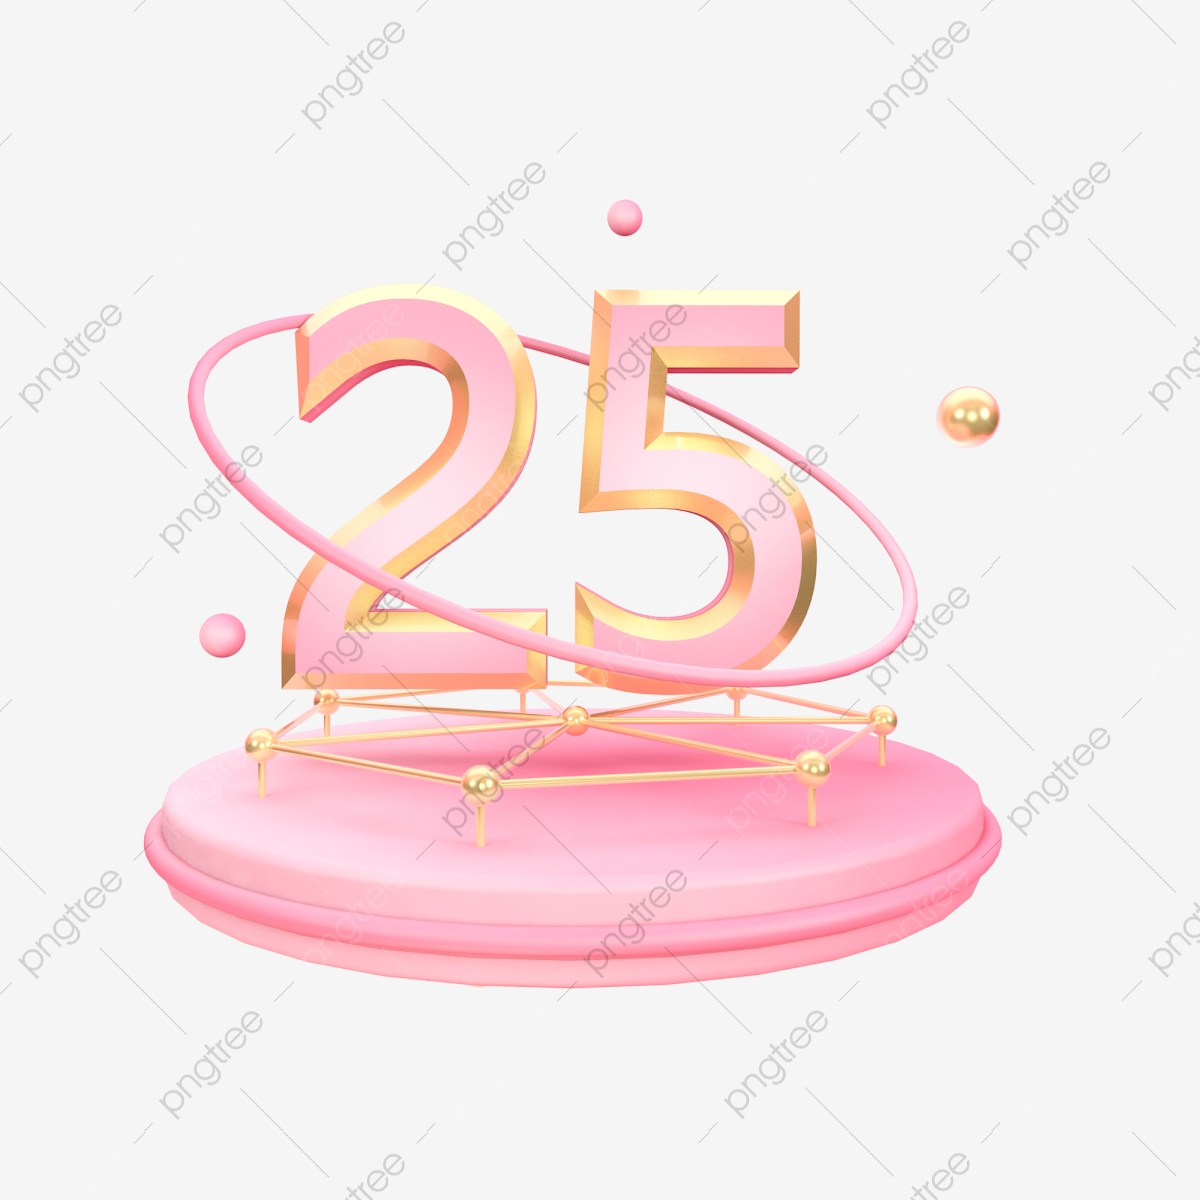 602 Number 25 High Res Illustrations - Getty Images